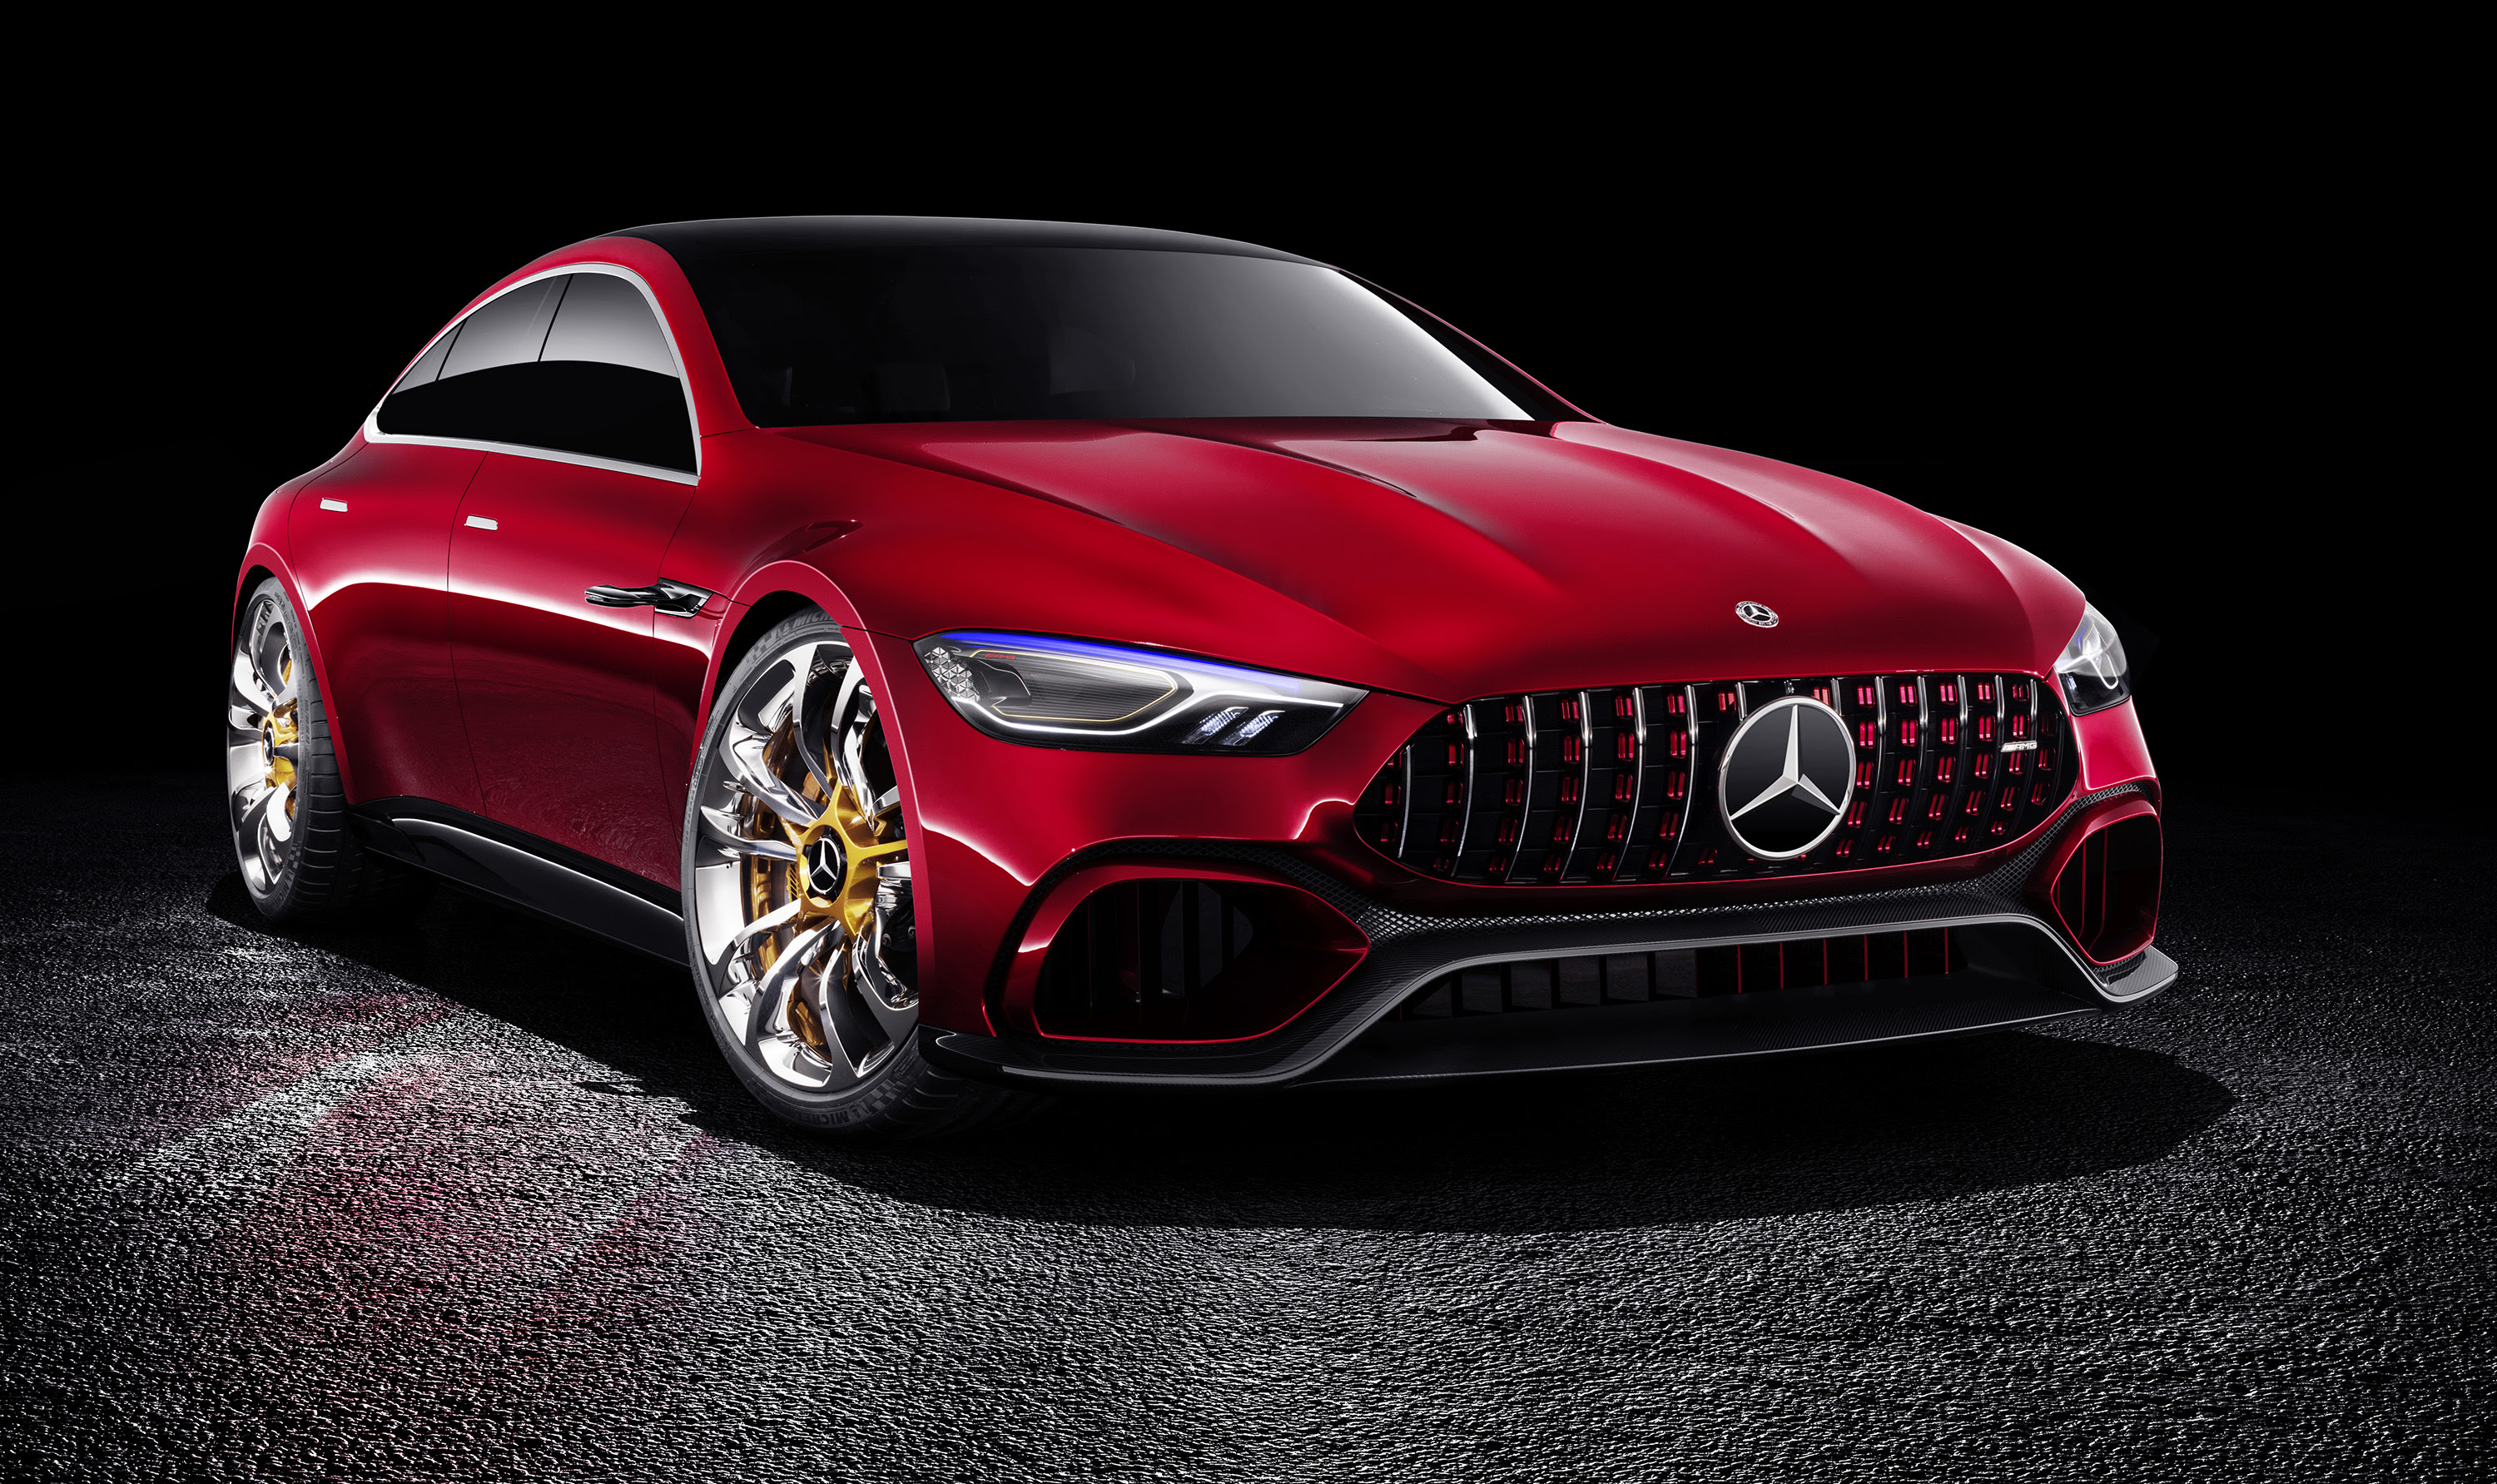 Mercedes-AMG GT four-door concept revealed - Photos (1 of 17)